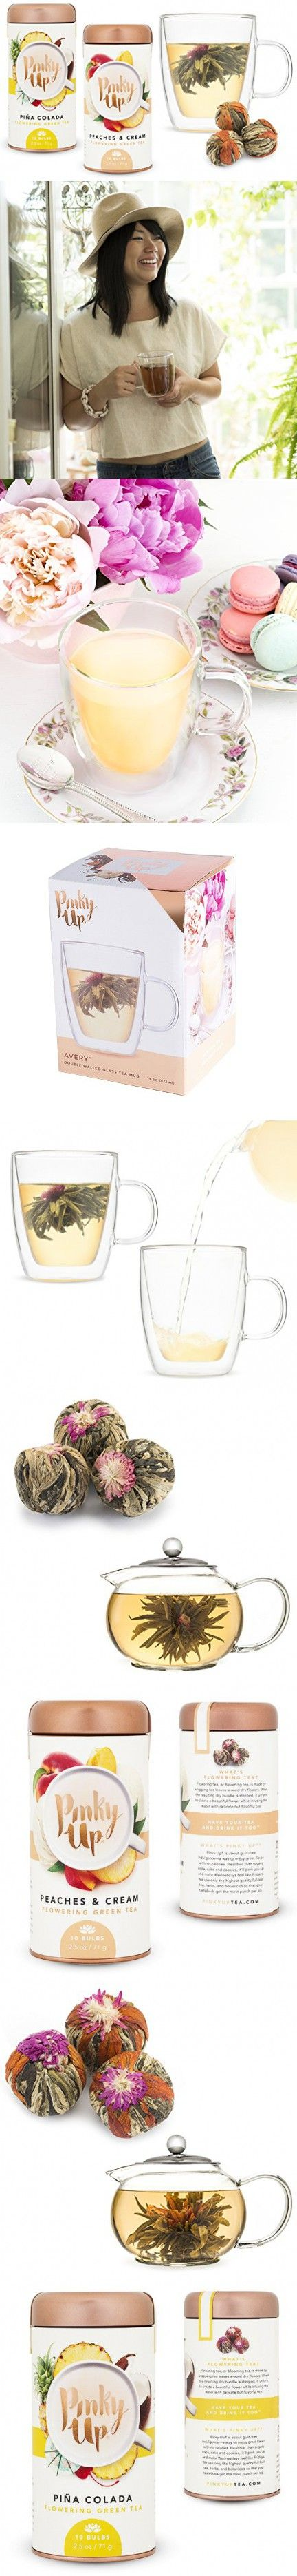 Blooming Tea with 16 oz. Glass Mug for a 3 pc. Flowering Balls Relaxation Gift Set for Women (Peaches, Pina Colada)